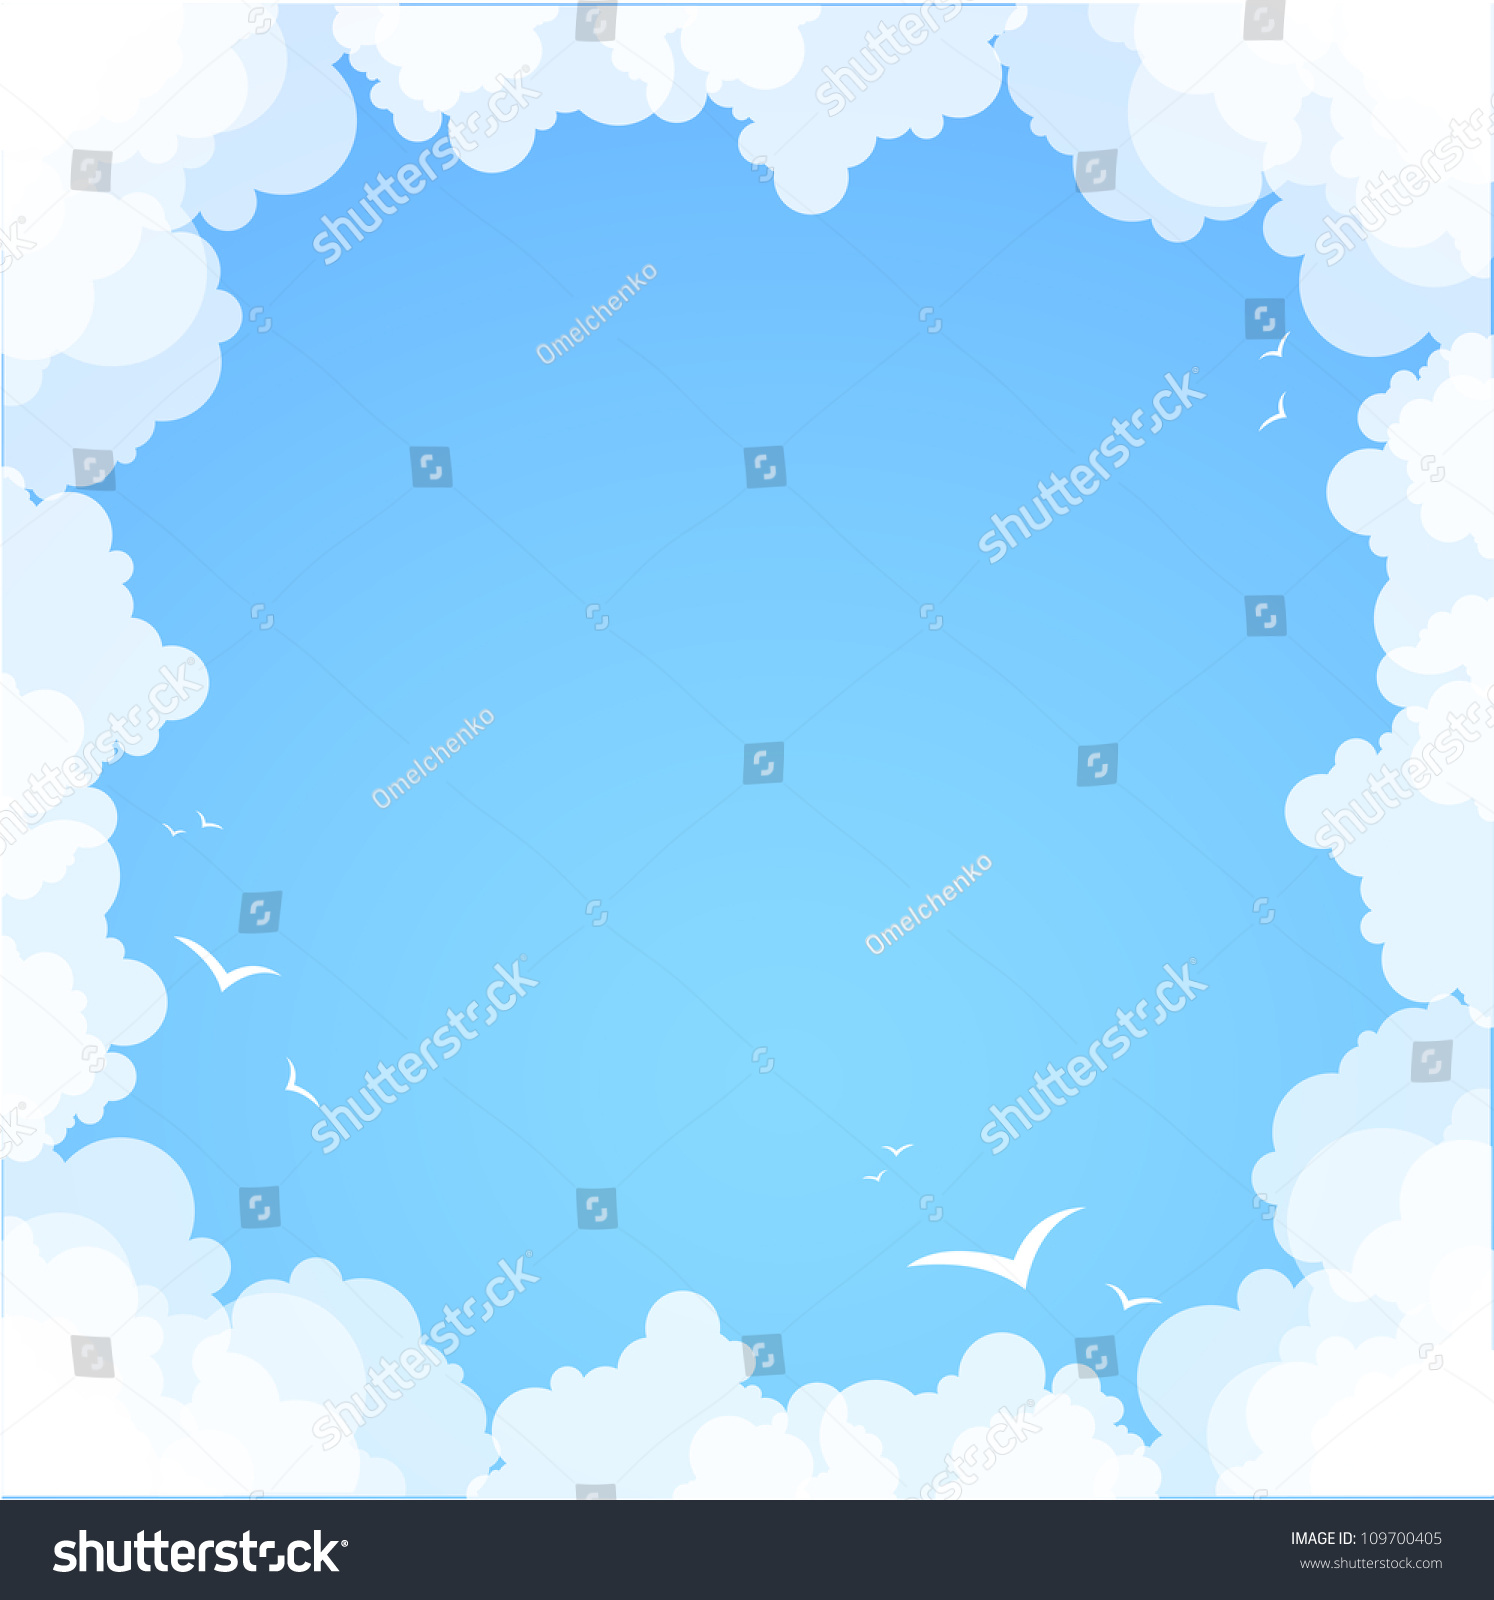 frame made of clouds abstract background summer theme